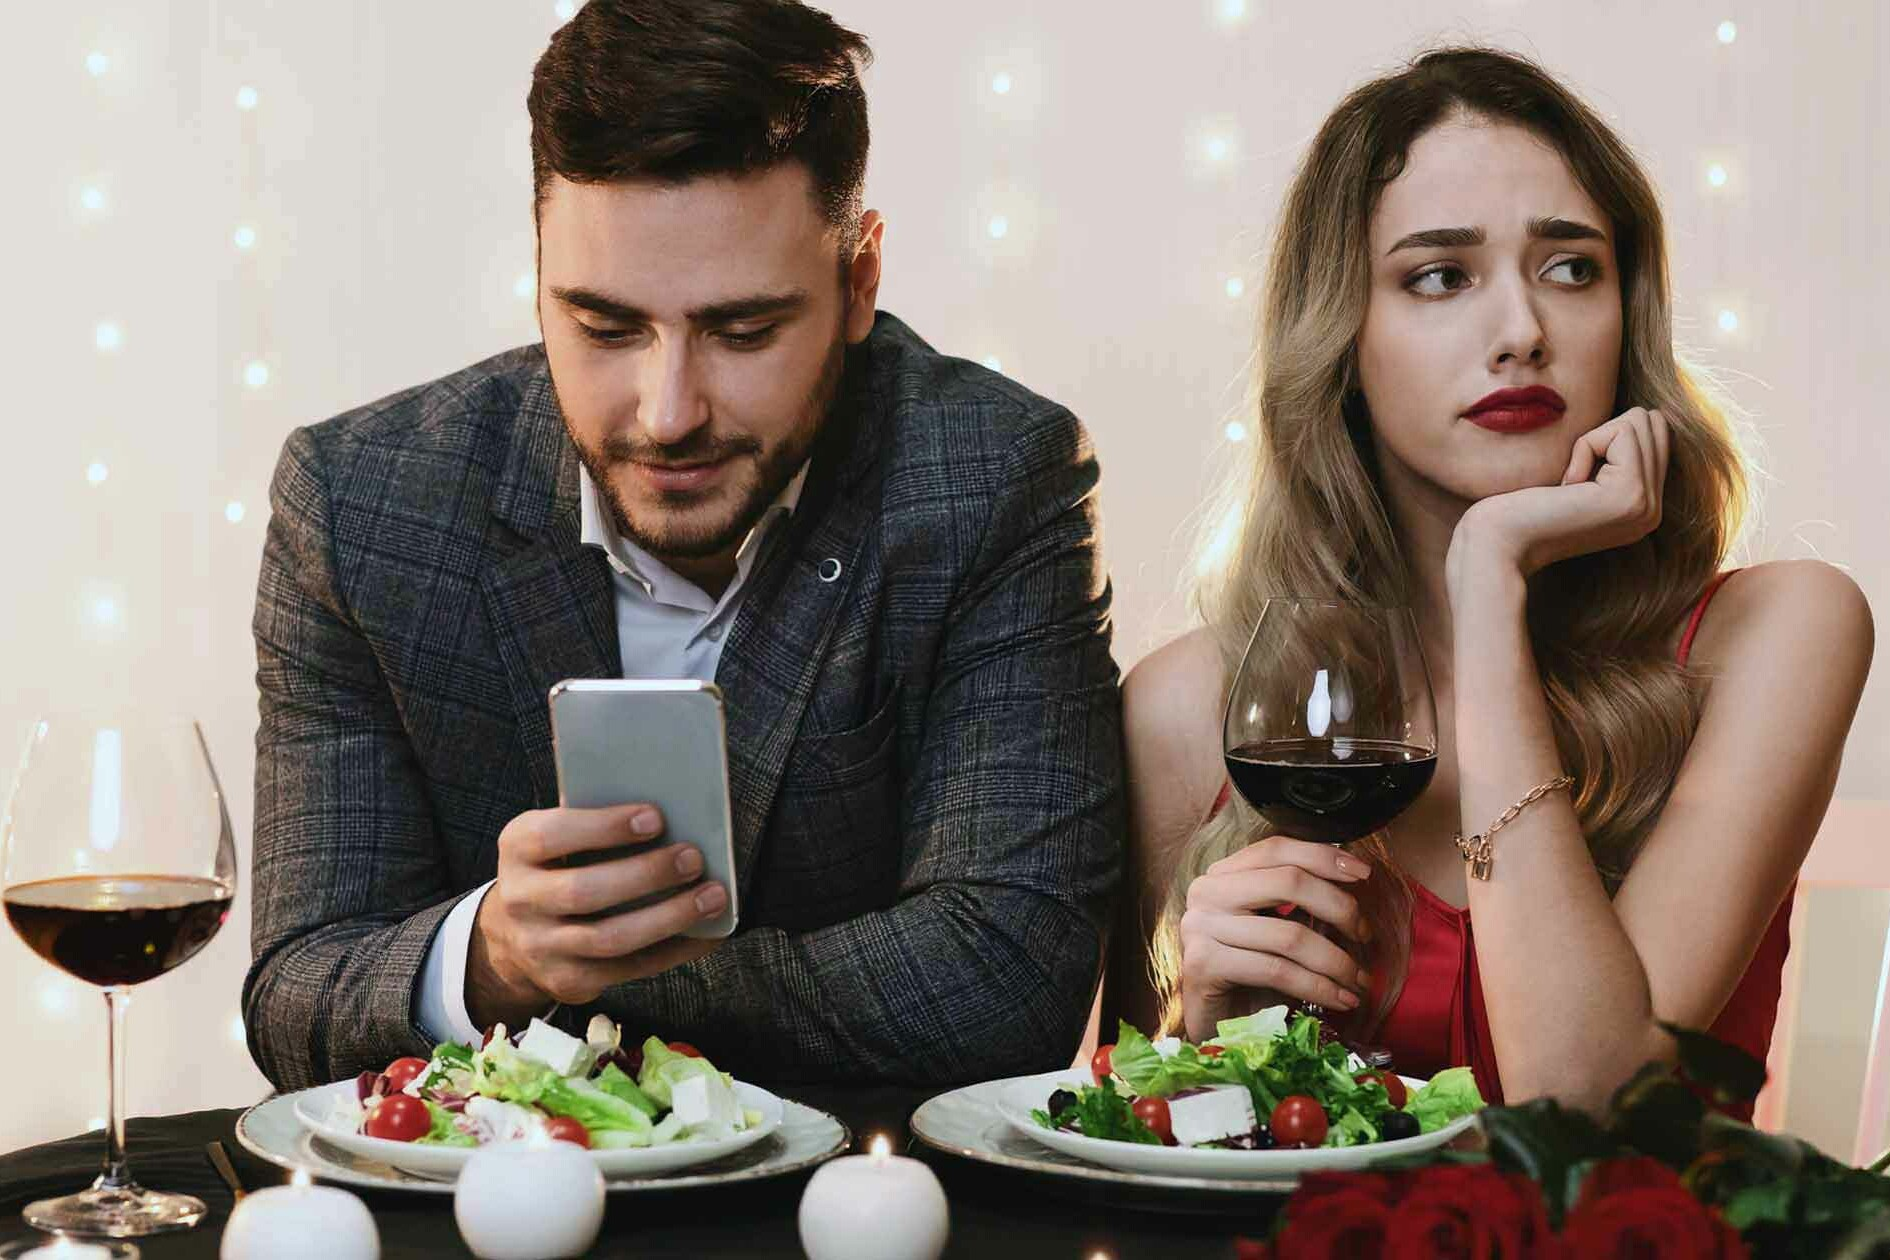 Couple on Date Making Bad First Impressions